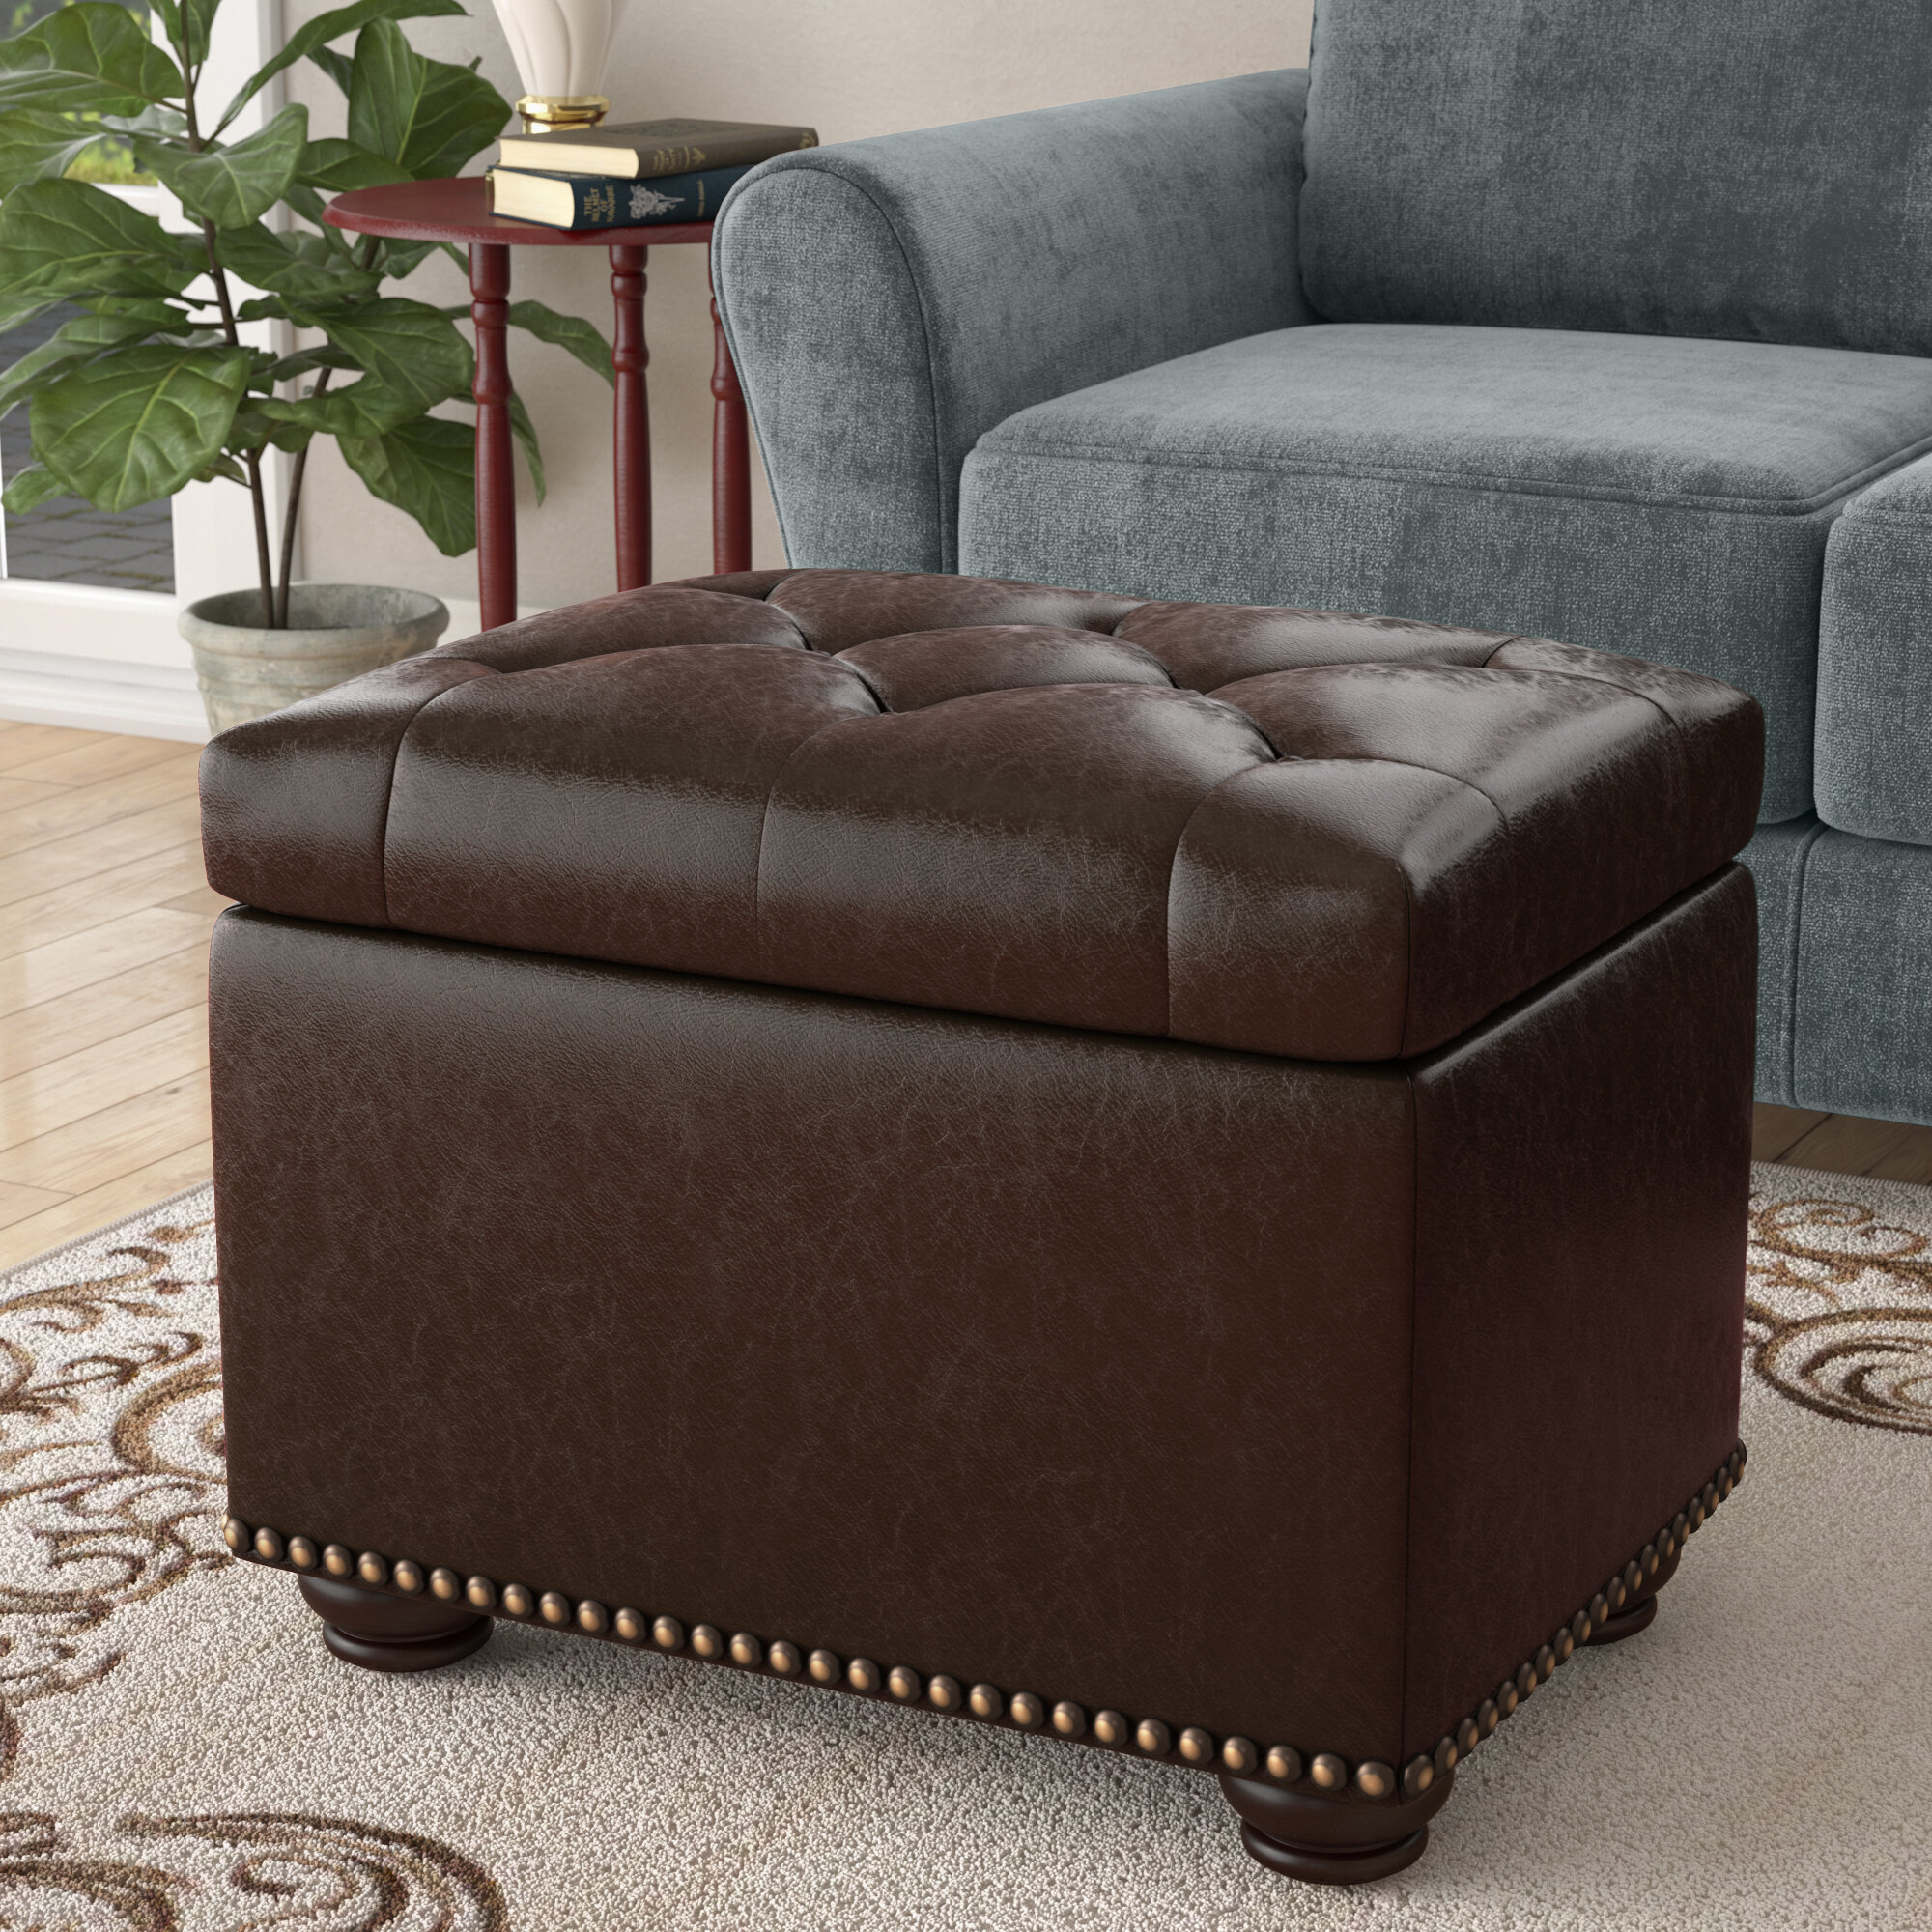 Charlton Home Bernadette Tufted Storage Ottoman Reviews Wayfair